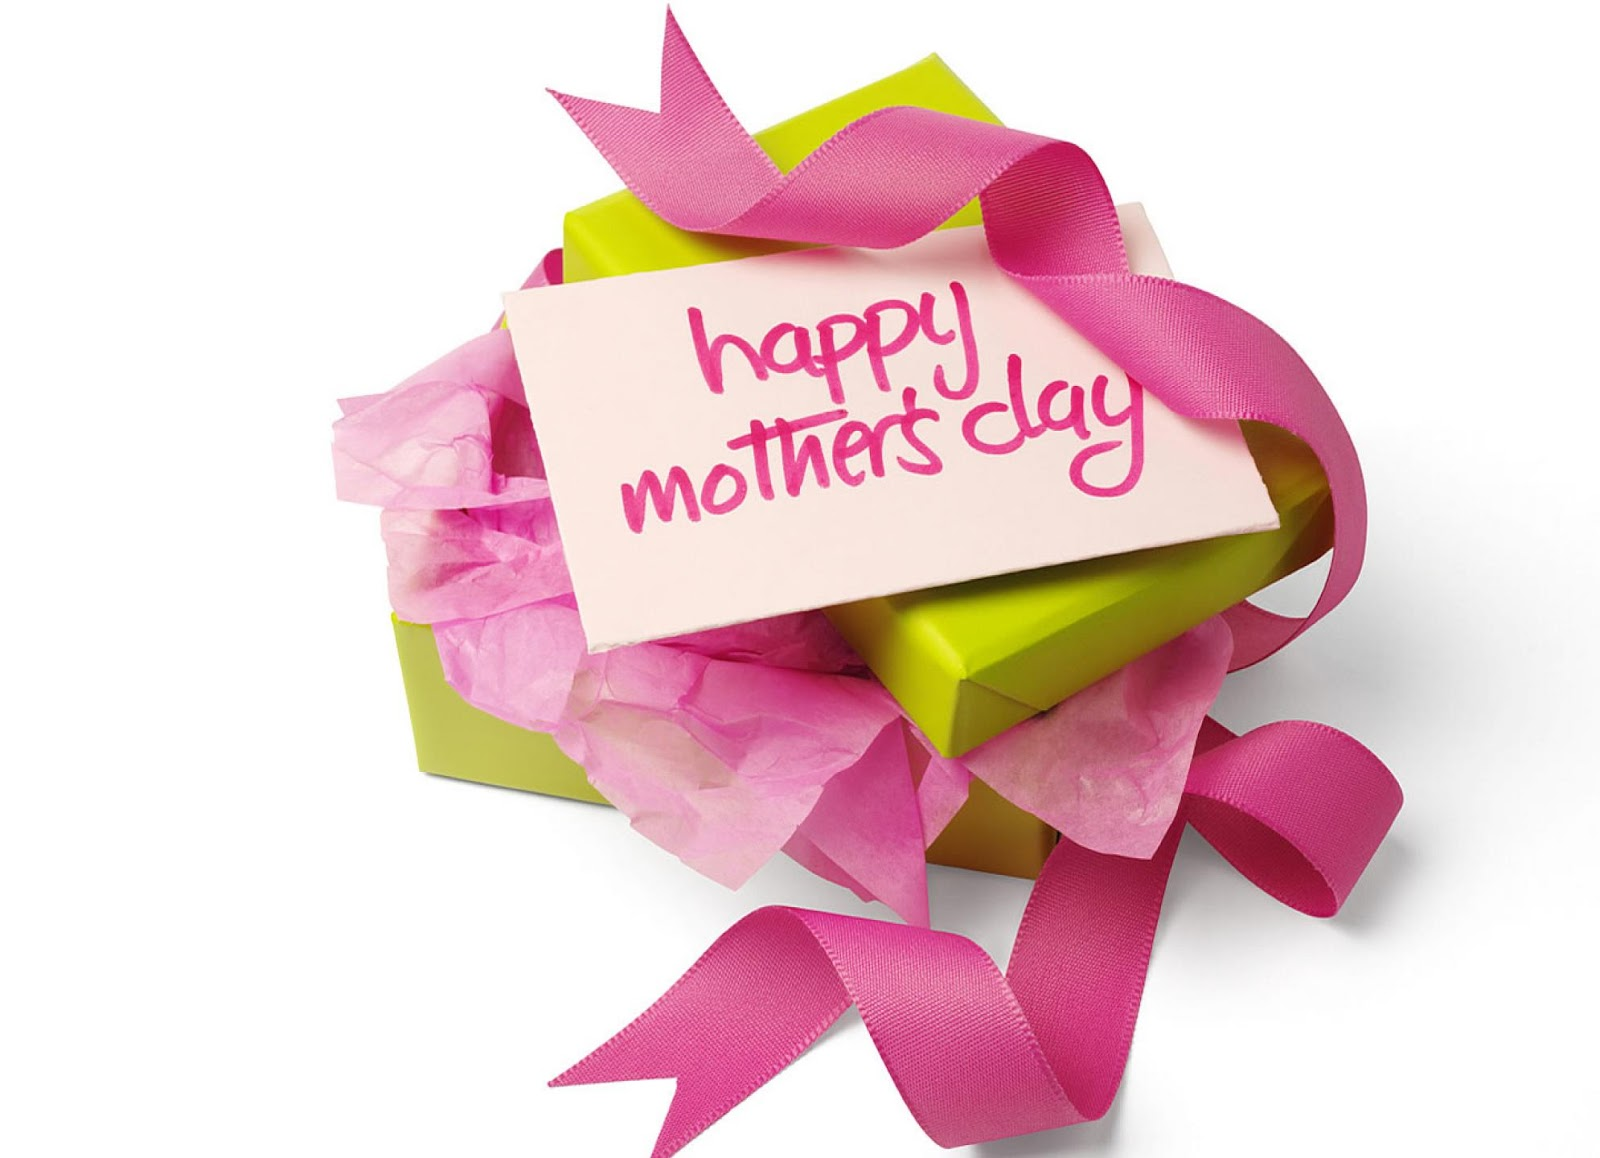 3 thoughtful mothers day gifts - Your guide to smart savings!